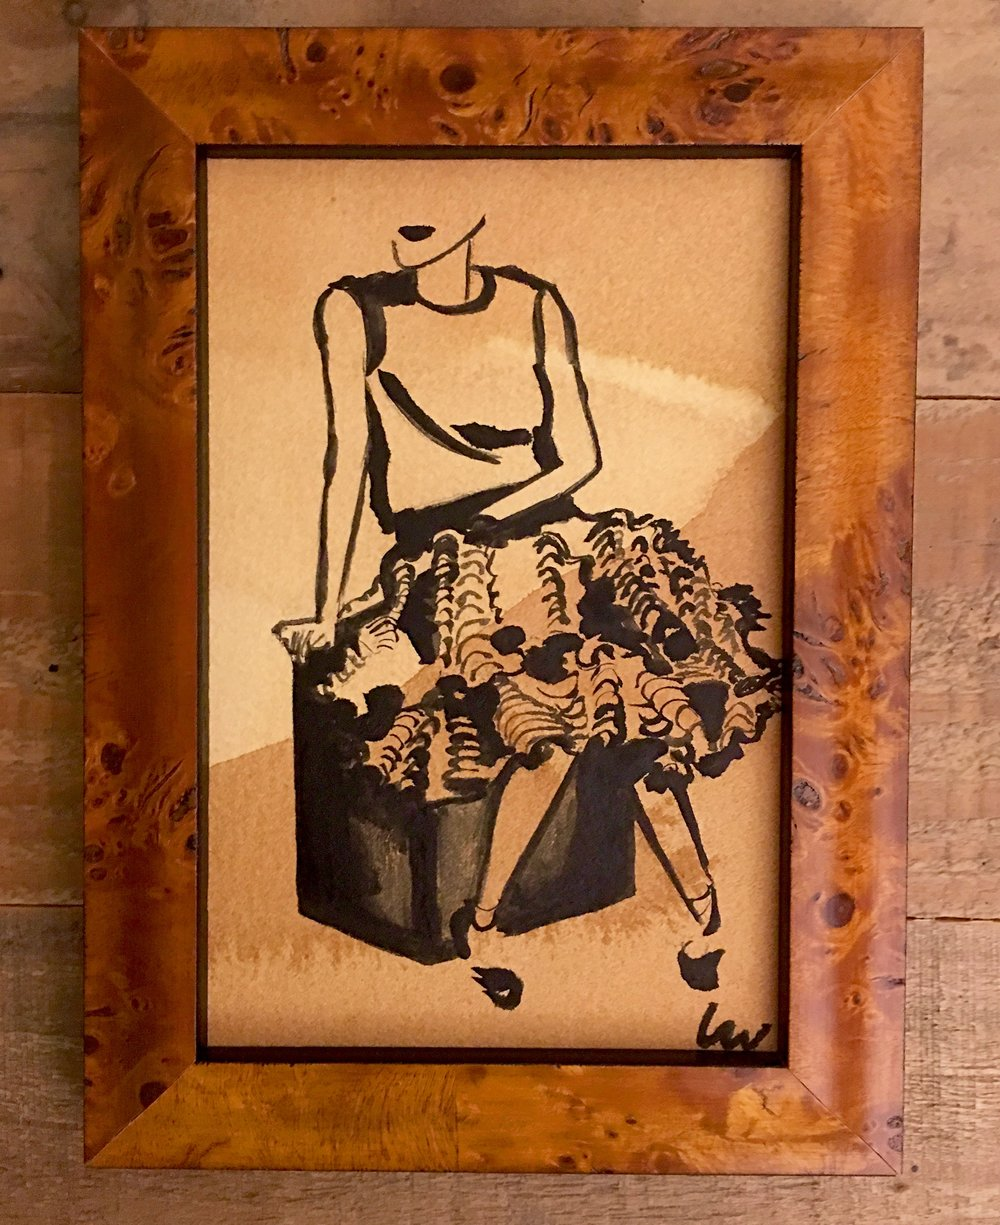 {p r i s c i l l a} - graphite & acrylic on tea stained cold press watercolor paper. custom burlwood frame4x6